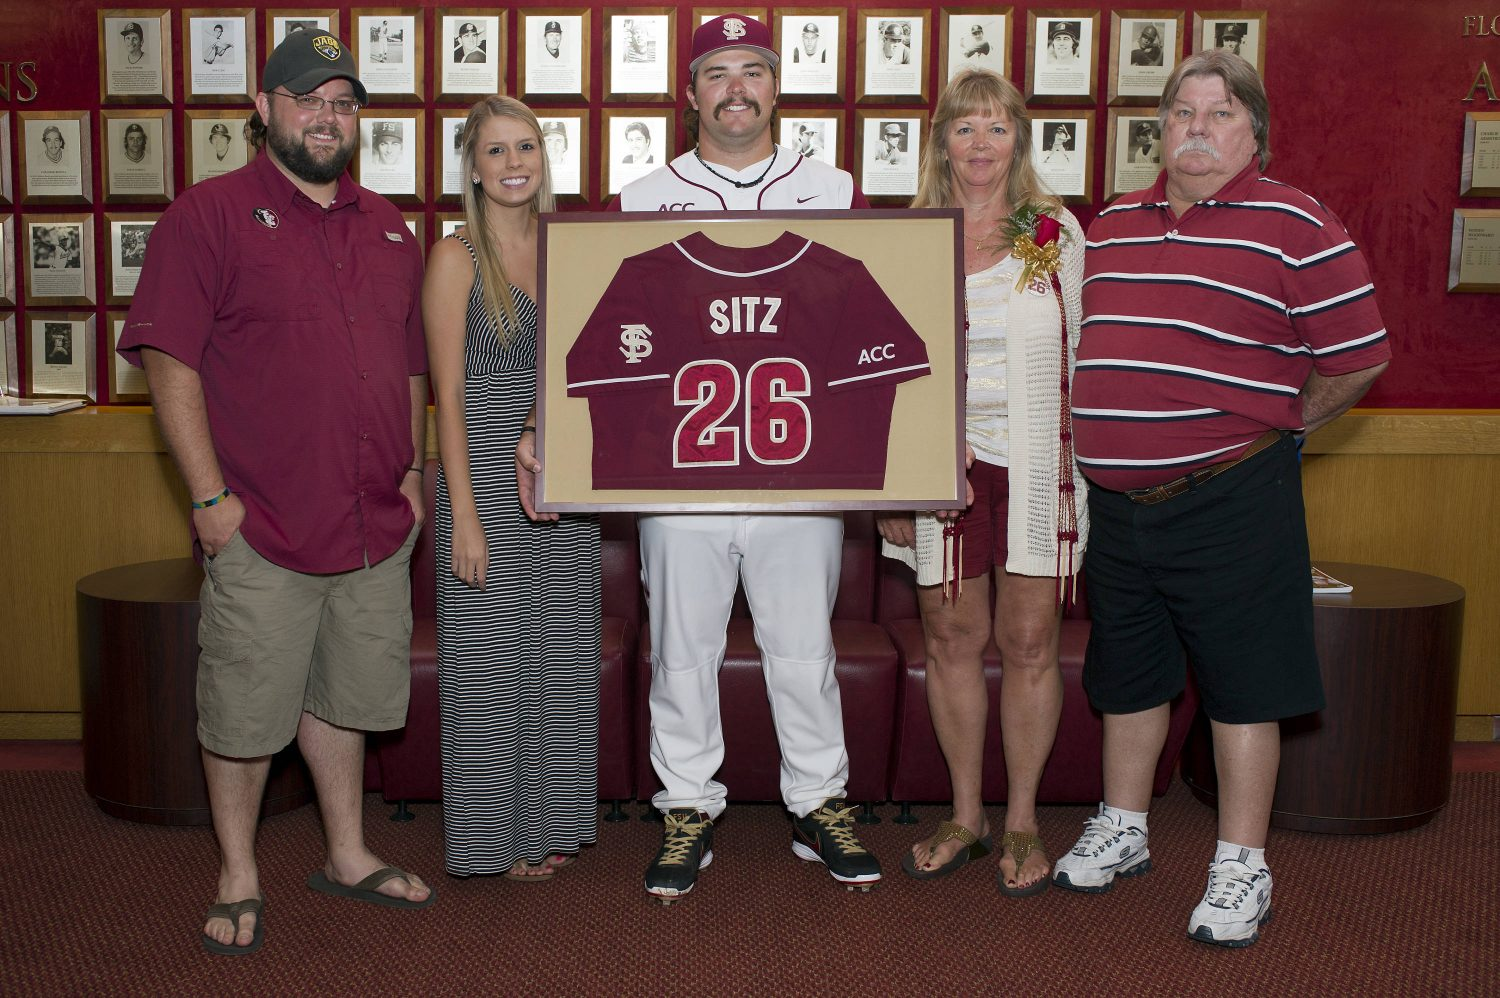 Scott Sitz (26) and family members